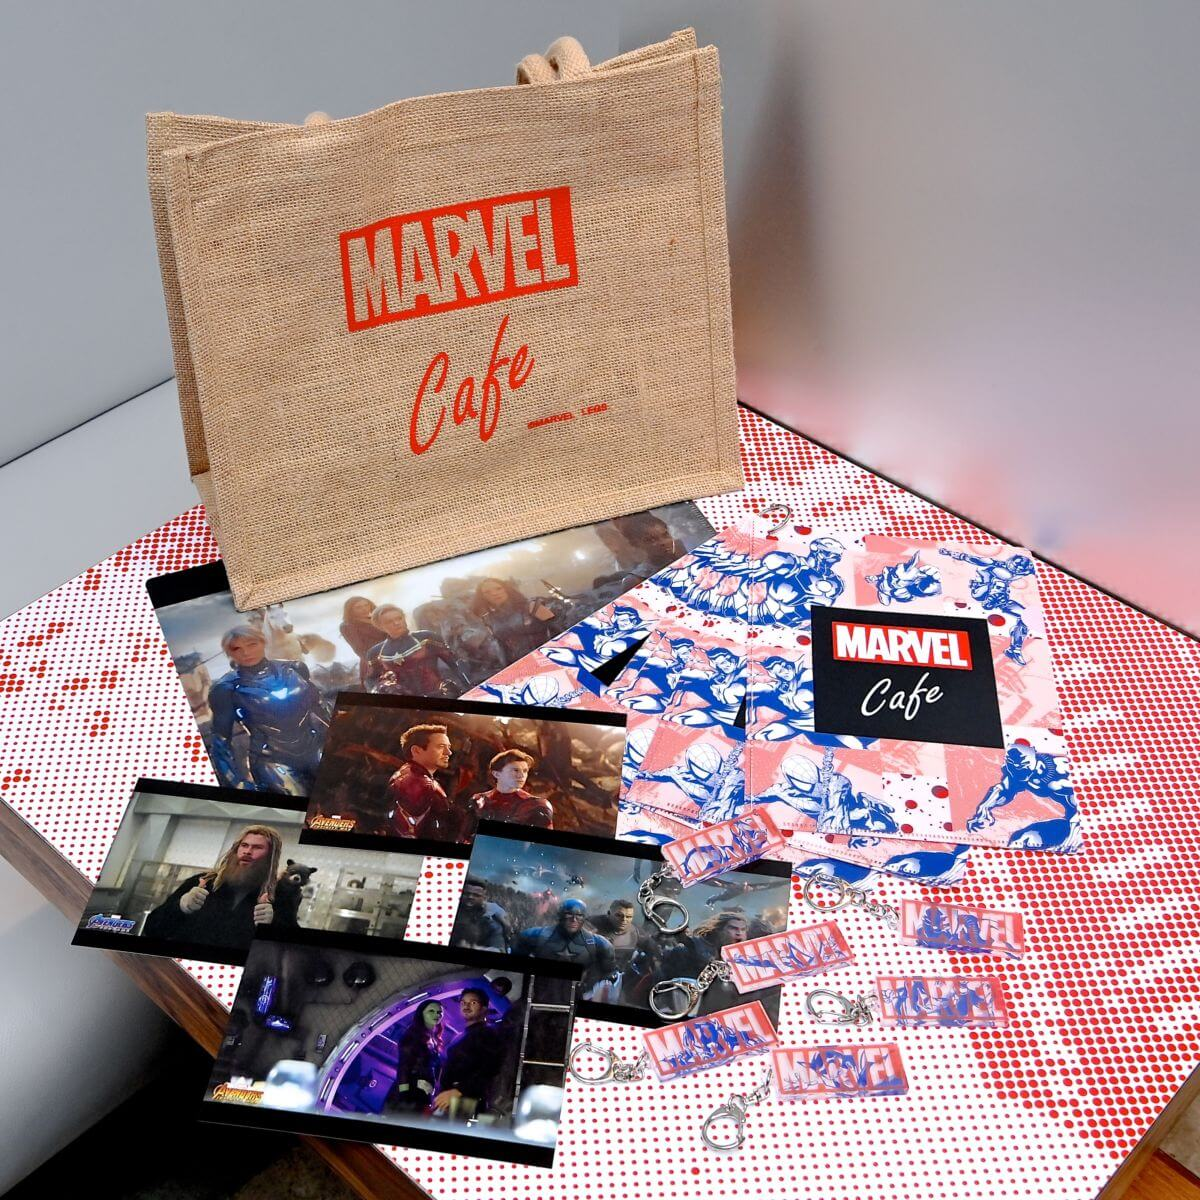 「MARVEL」cafe produced by OH MY CAFE オリジナルグッズ